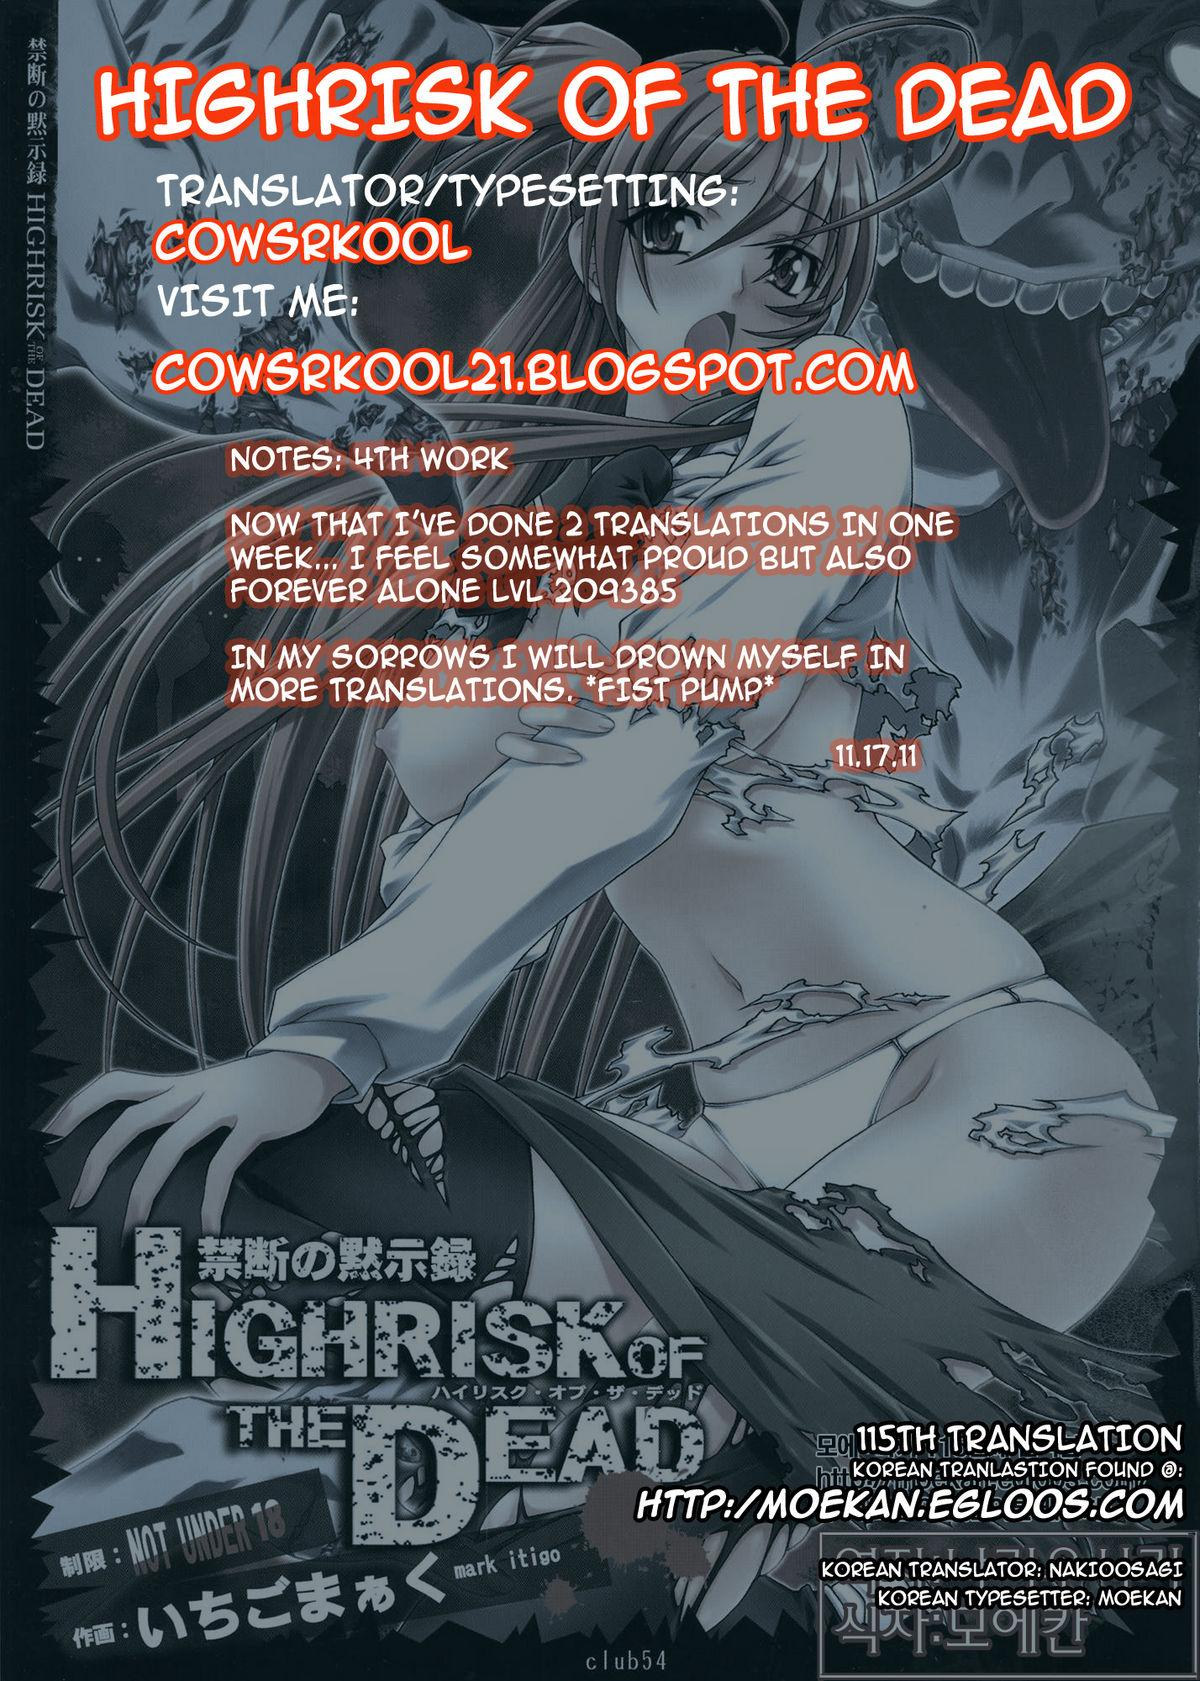 HIGHRISK OF THE DEAD 1